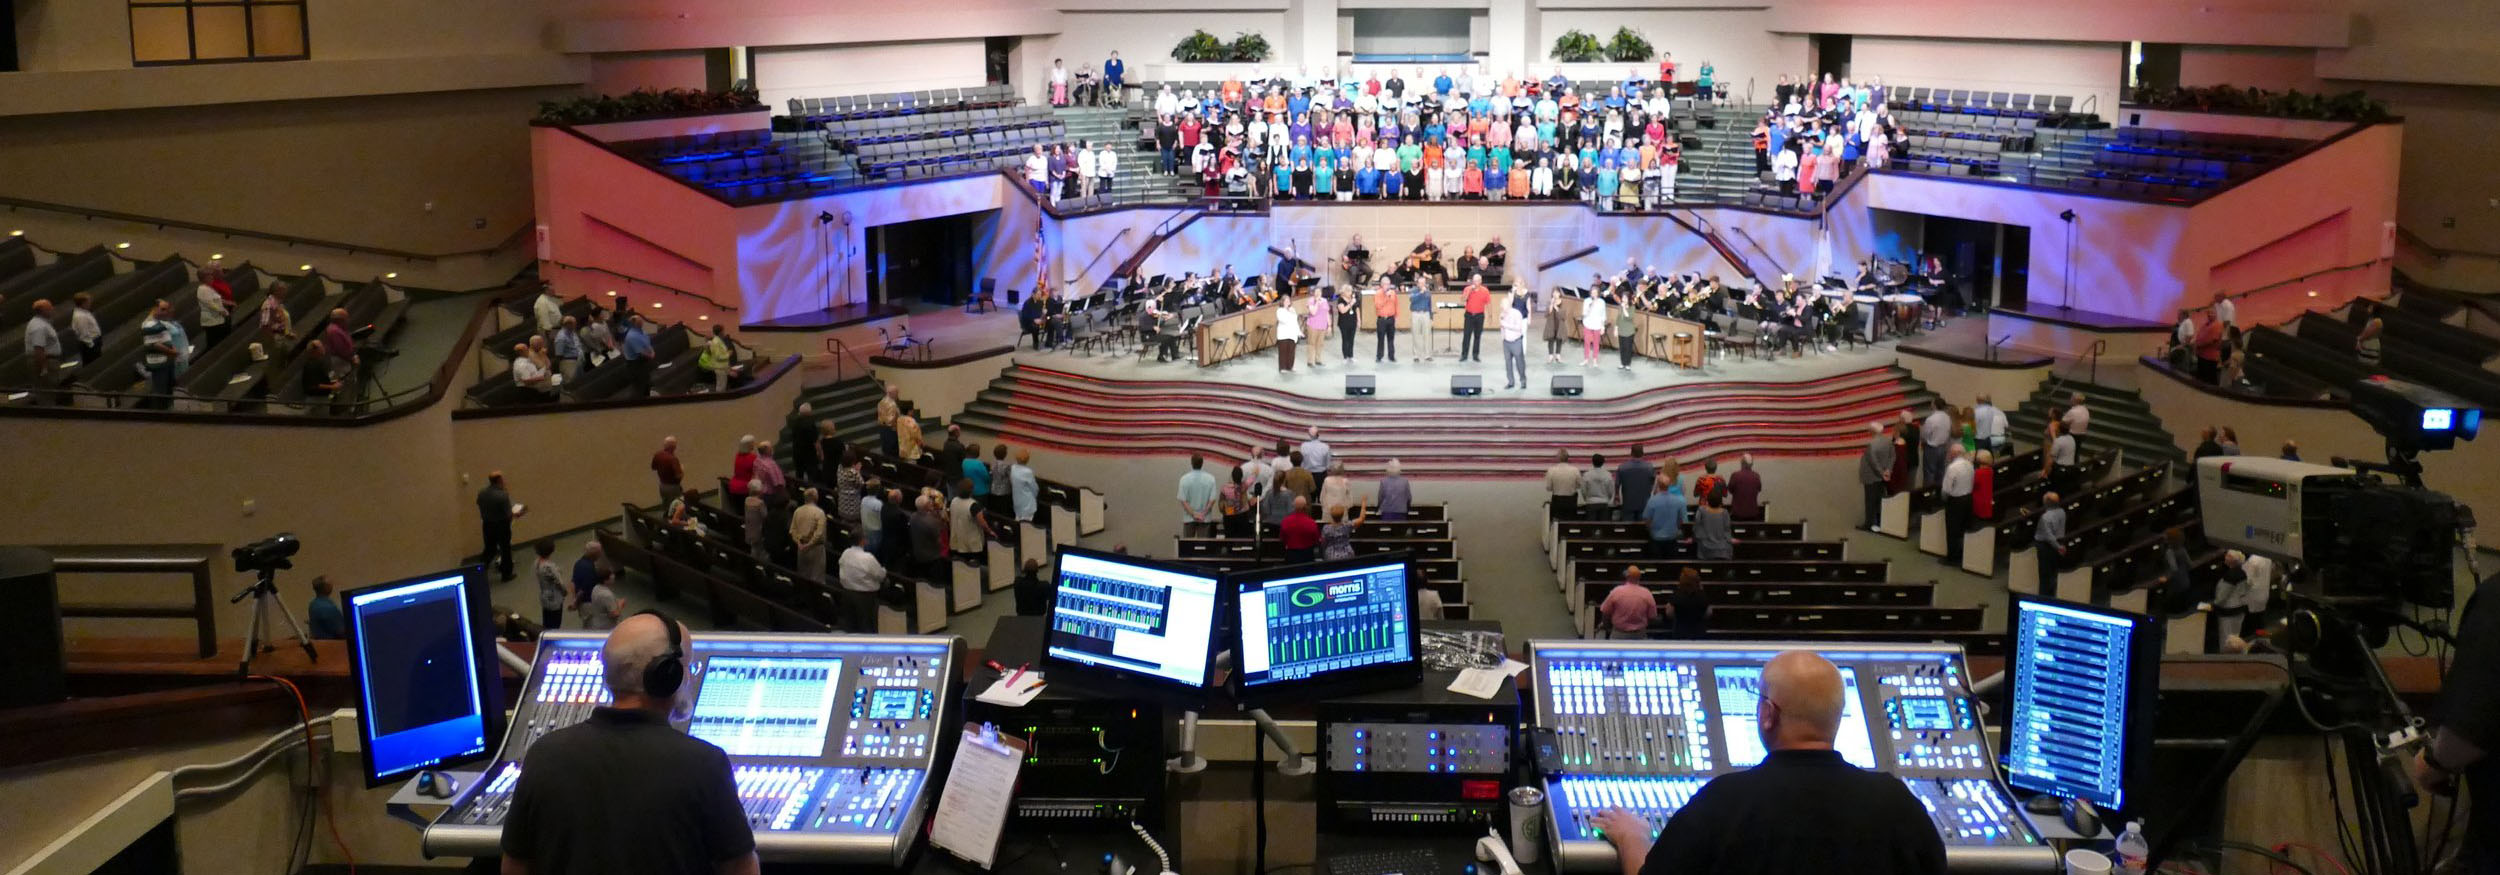 Green Acres Baptist Church: - Creating a consistent experience for a huge congregation.